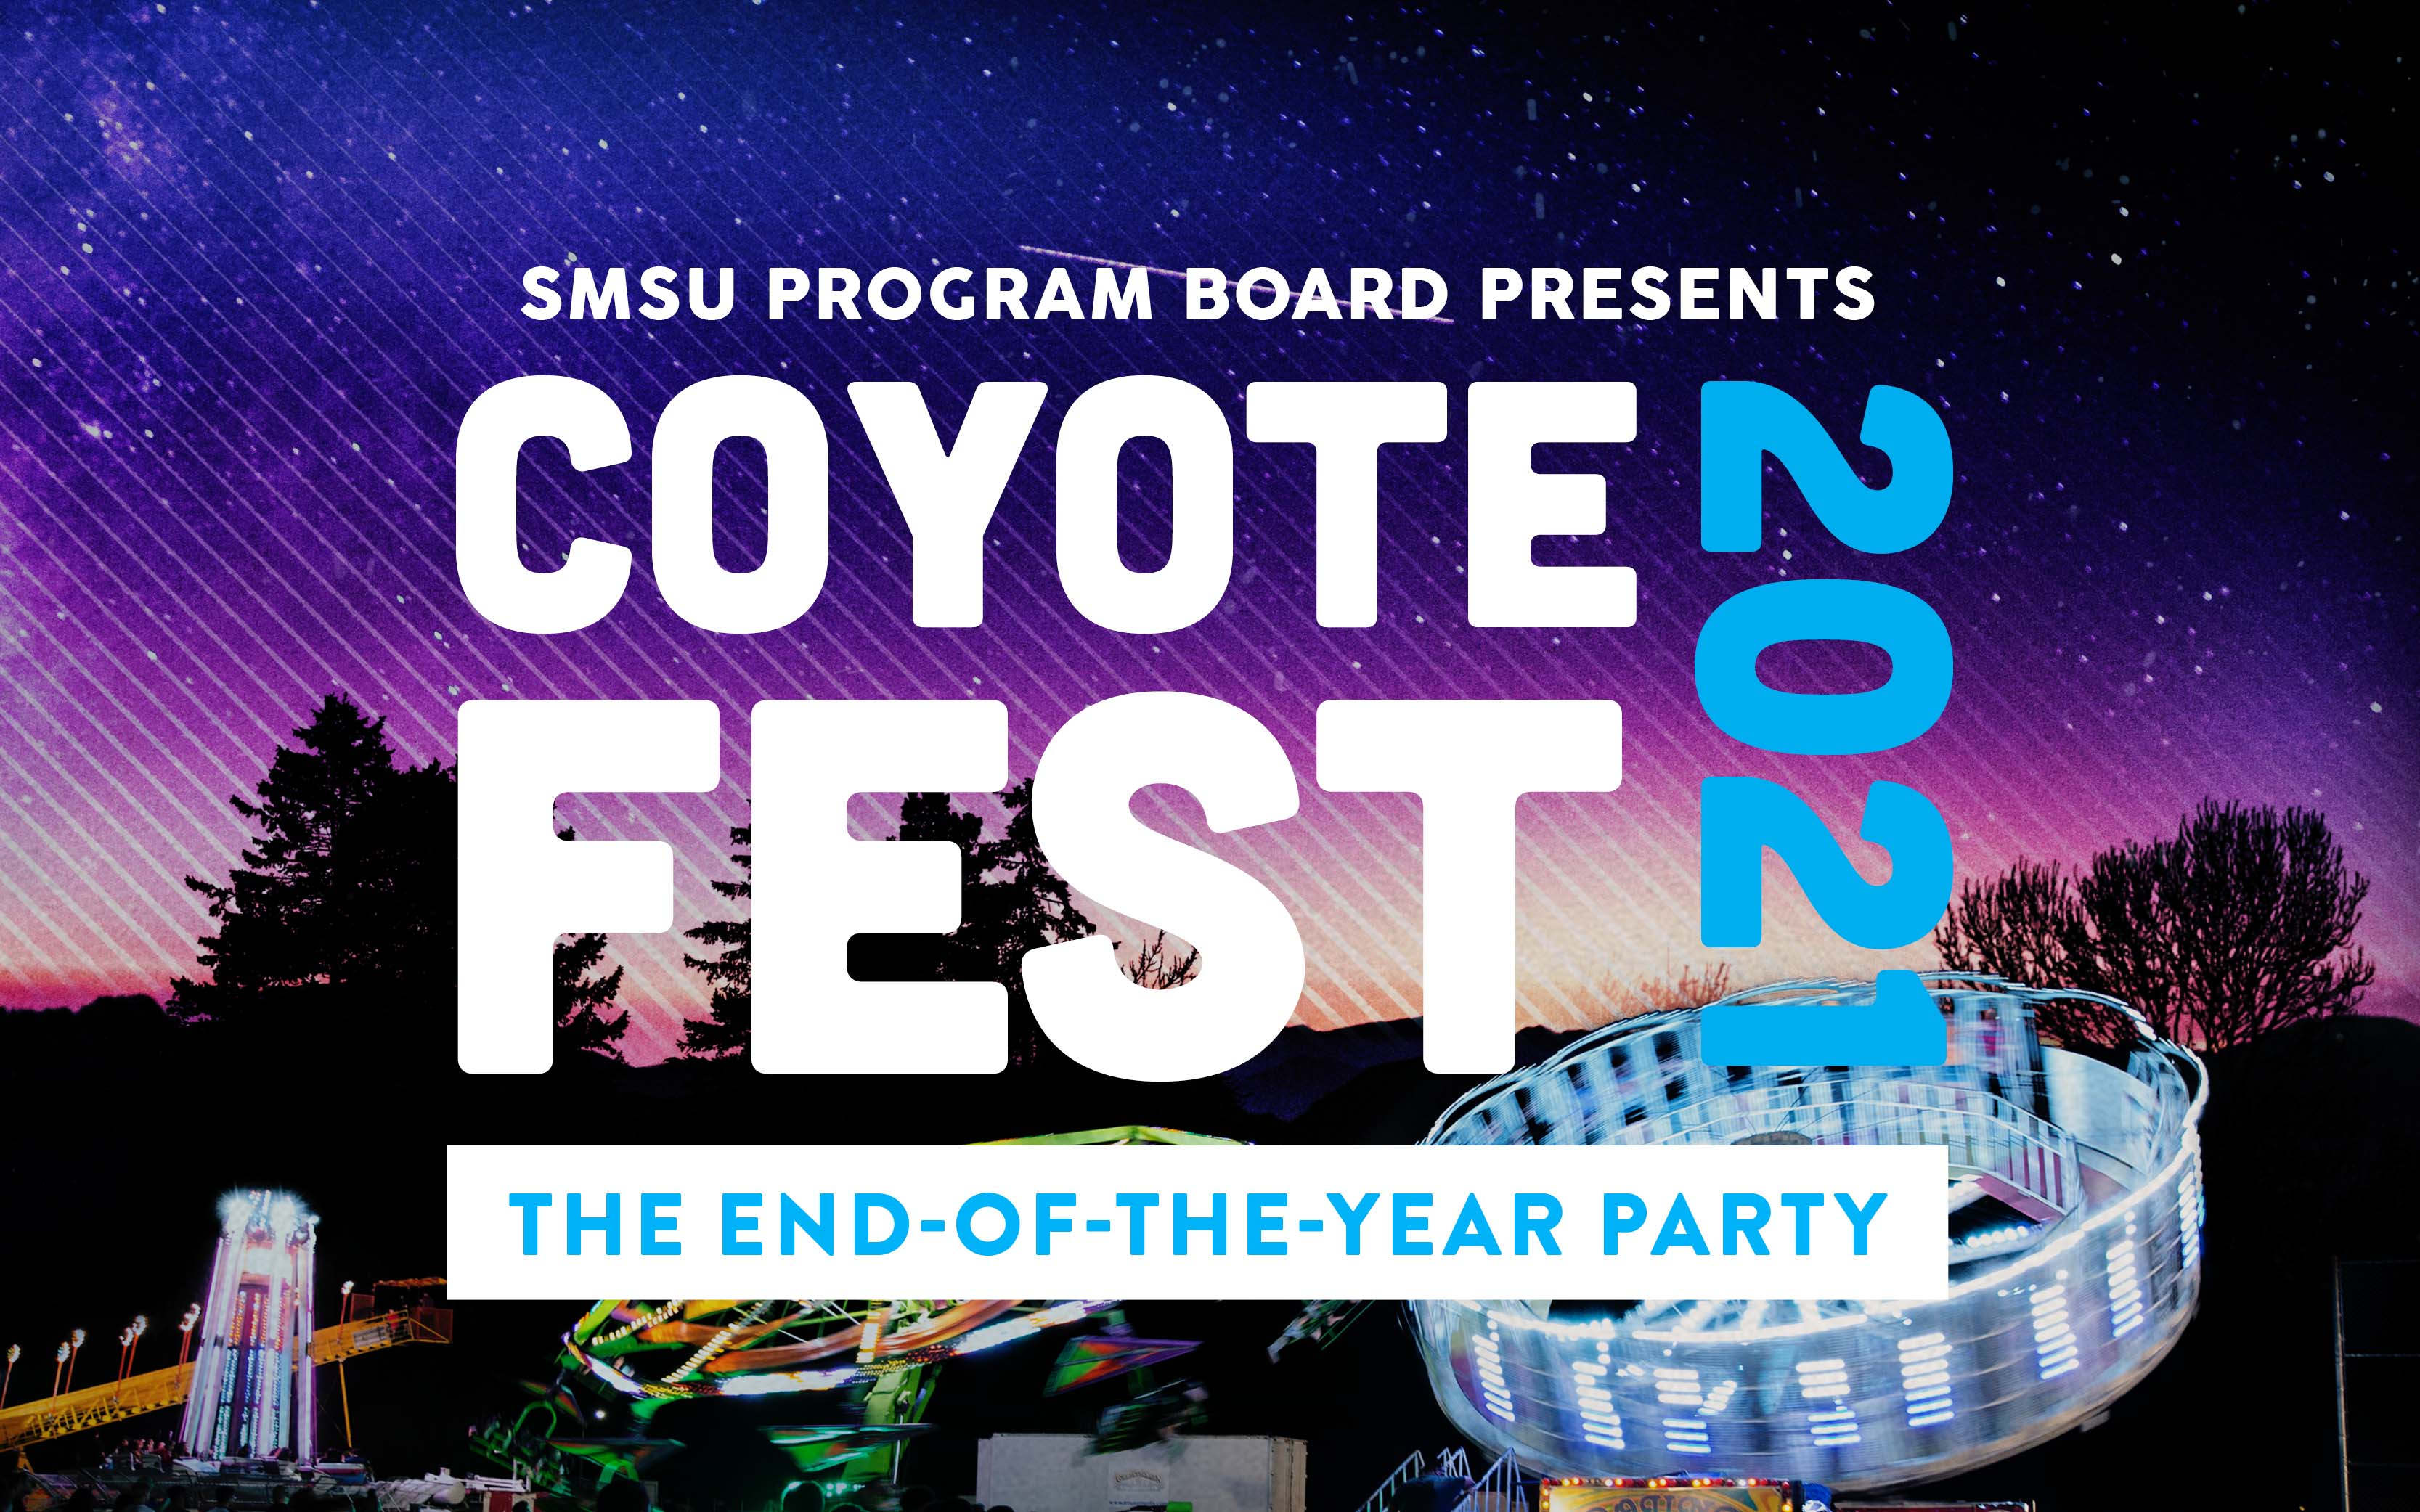 SMSU Program Board presents Coyote Fest 2021: The End-of-the-Year Party